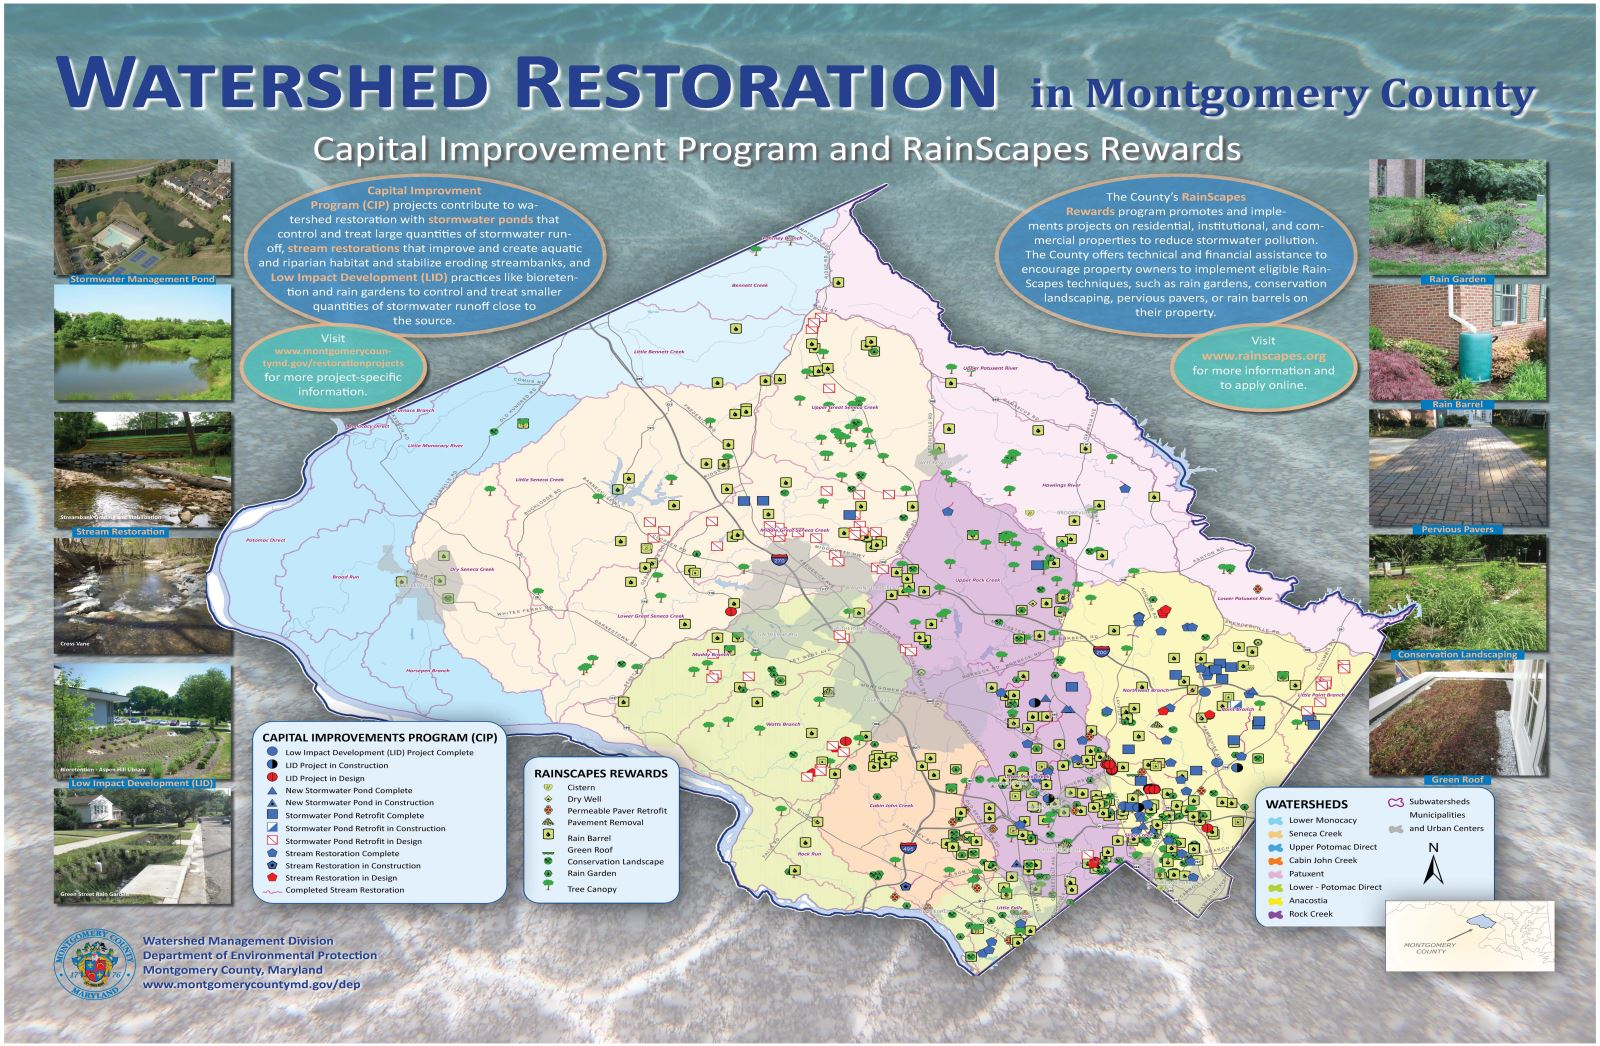 Poster of the watershed restoration program and RainScapes project locations